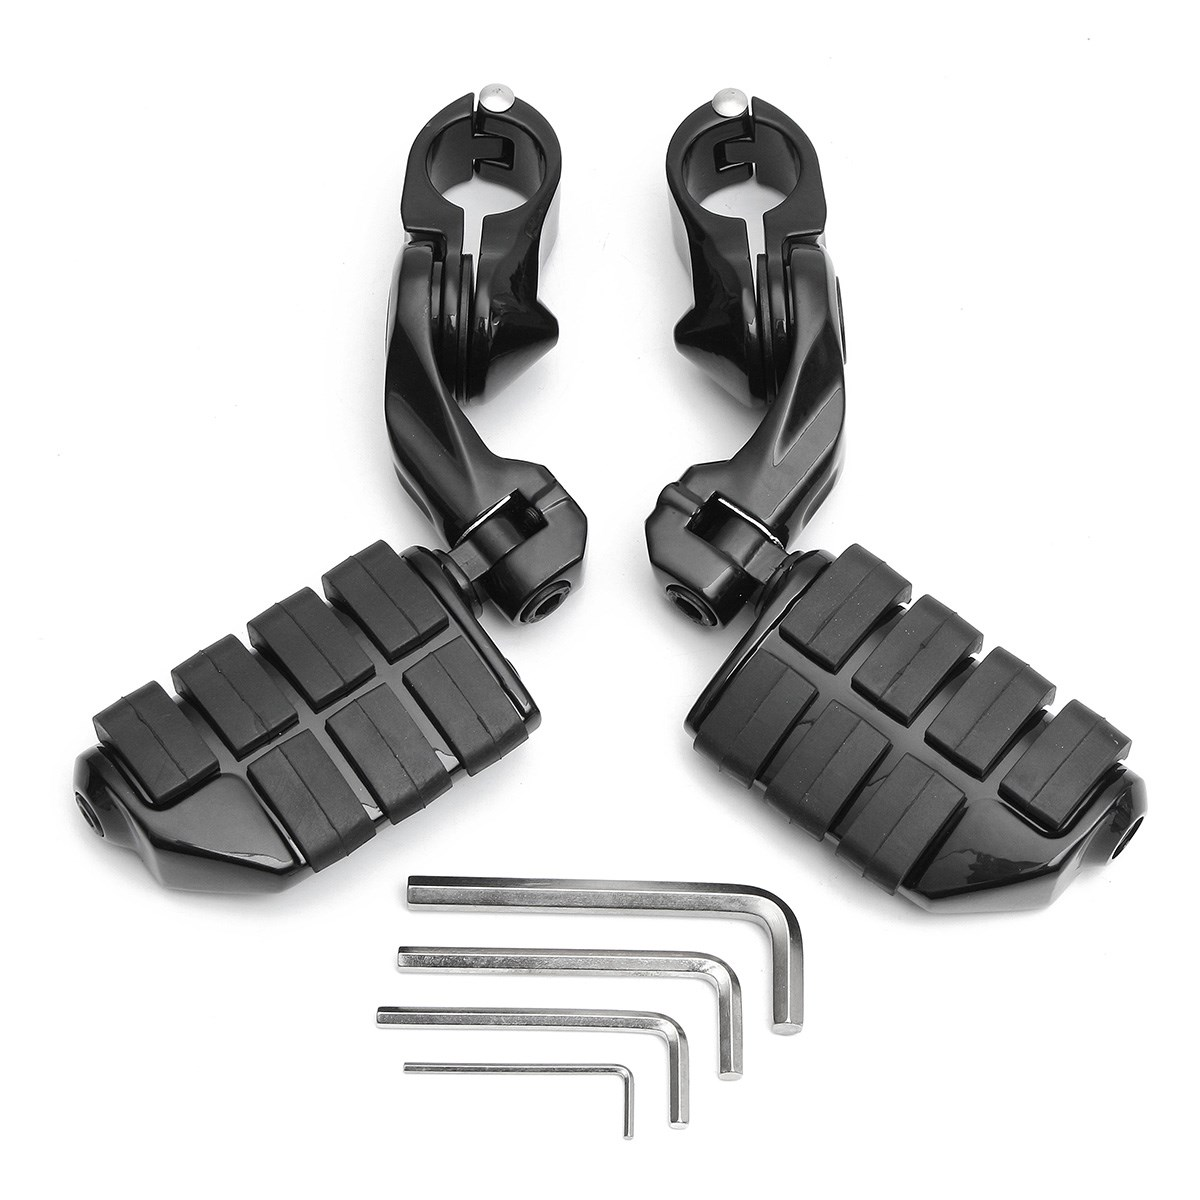 1 Pair Black Motorcycle Short Angled Foot Rest Adjustable Peg Pedal 1.25/32mm For Harley-Davidson the canterbury tales cd